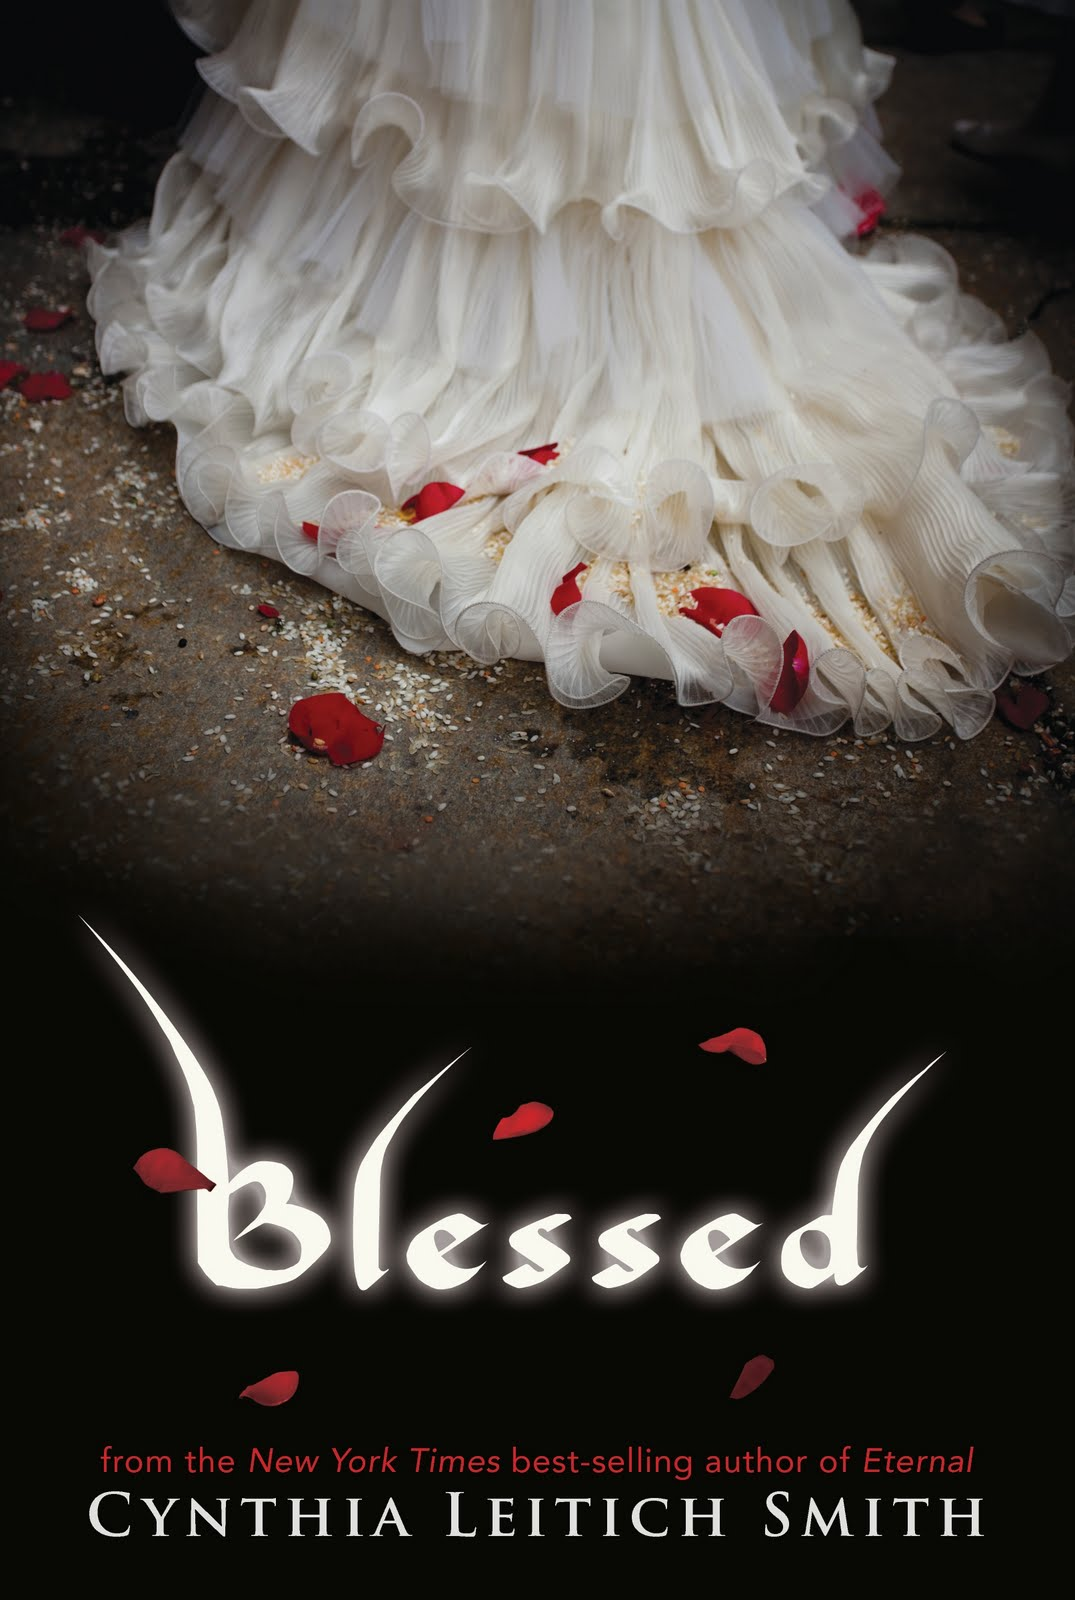 blessed CP hardcover Interview with Cynthia Leitich Smith by M.G. Buehrlen from Young Adult Books ...